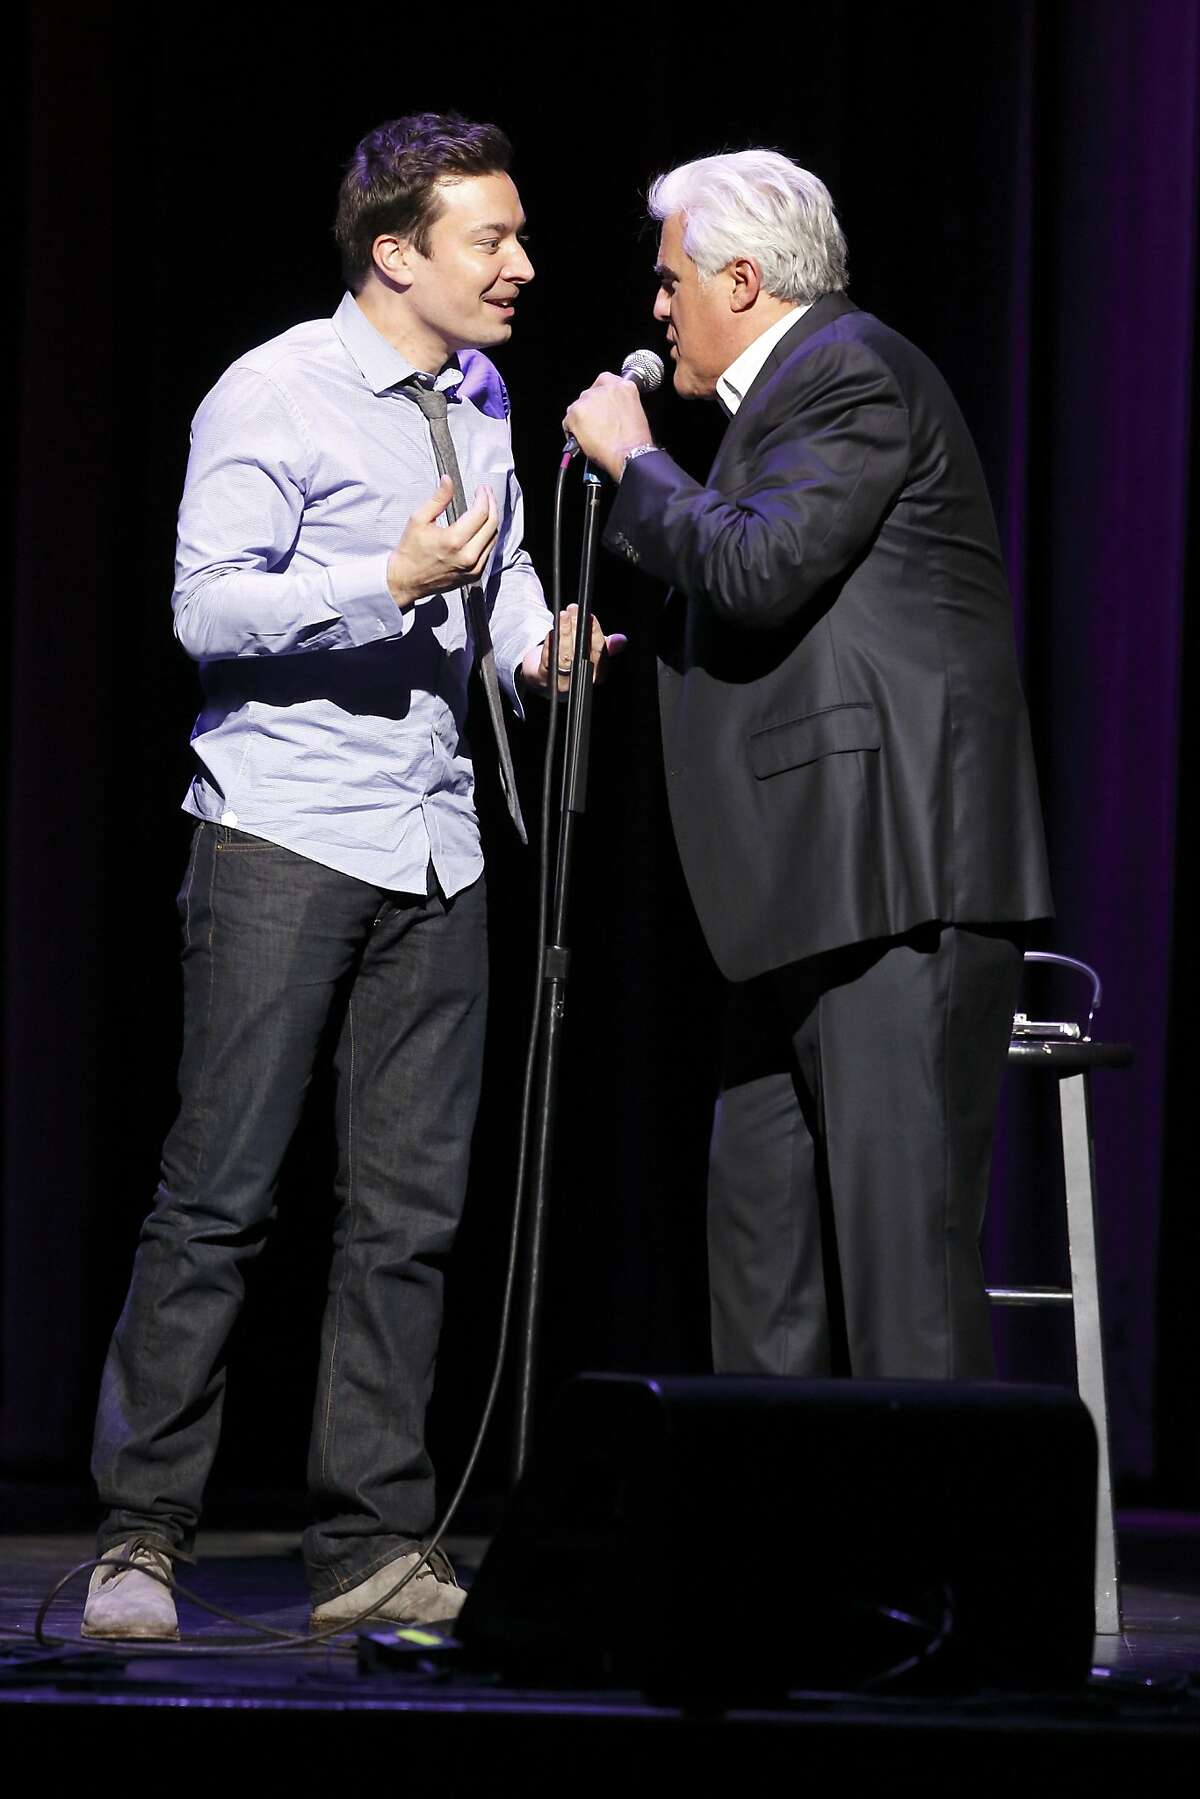 """NBCUNIVERSAL EVENTS -- Jimmy Fallon's Clean Cut Comedy Tour -- Pictured: December 5, 2013 - Jay Leno makes a surprise appearance at Jimmy Fallon's Clean Cut Comedy Tour in Los Angeles, CA. Leno will pass the """"Tonight Show"""" hosting torch to Fallon when """"The Tonight Show Starring Jimmy Fallon"""" premieres February 17, 2014 on NBC."""